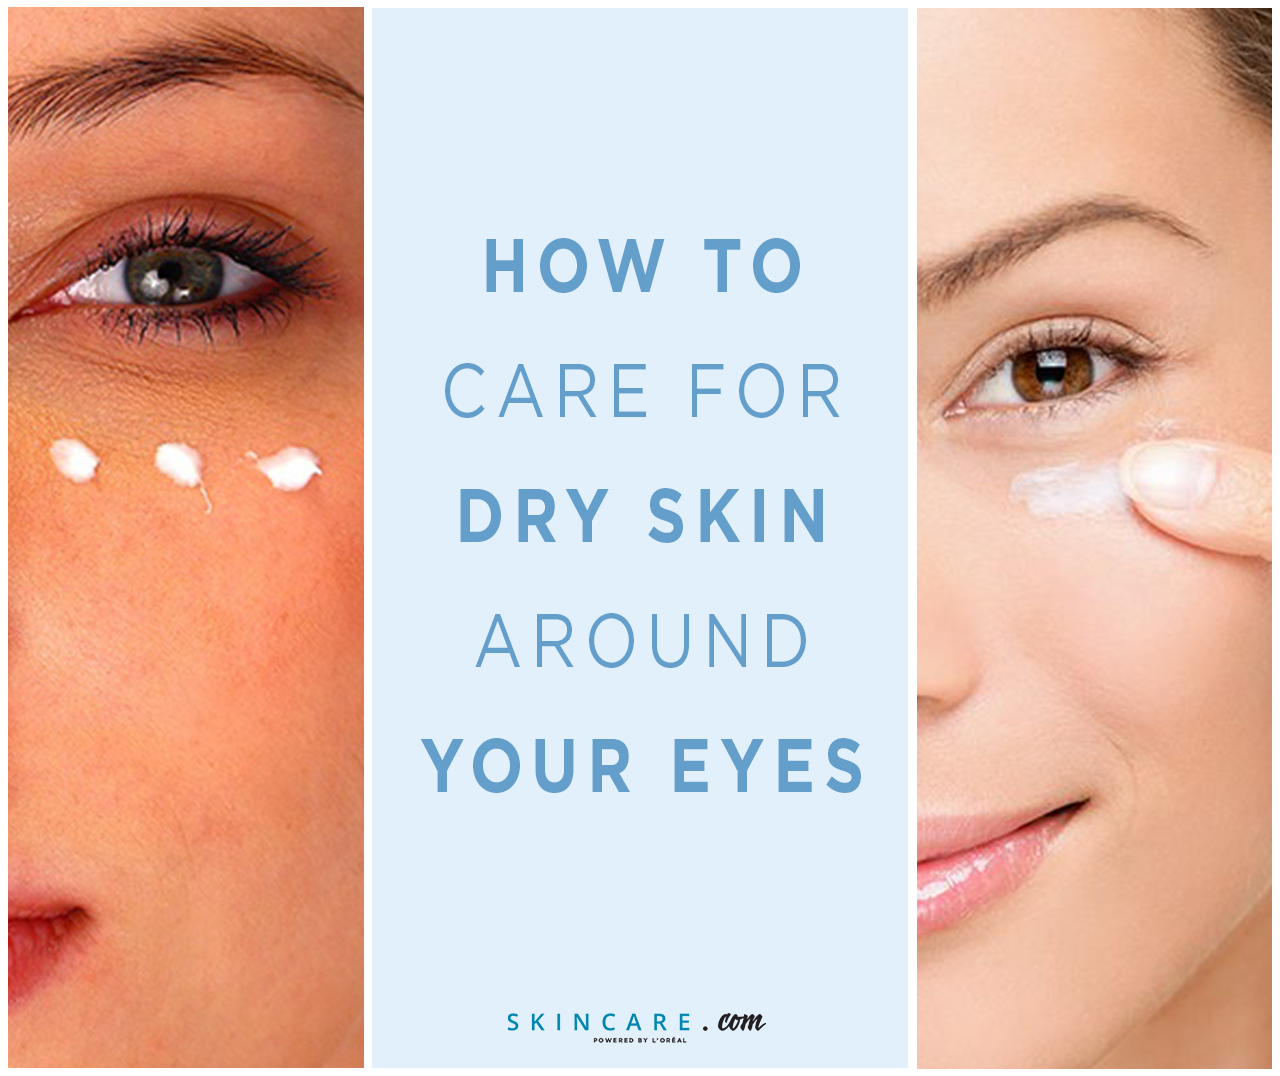 Because the skin around your eyes is so delicate and prone to early